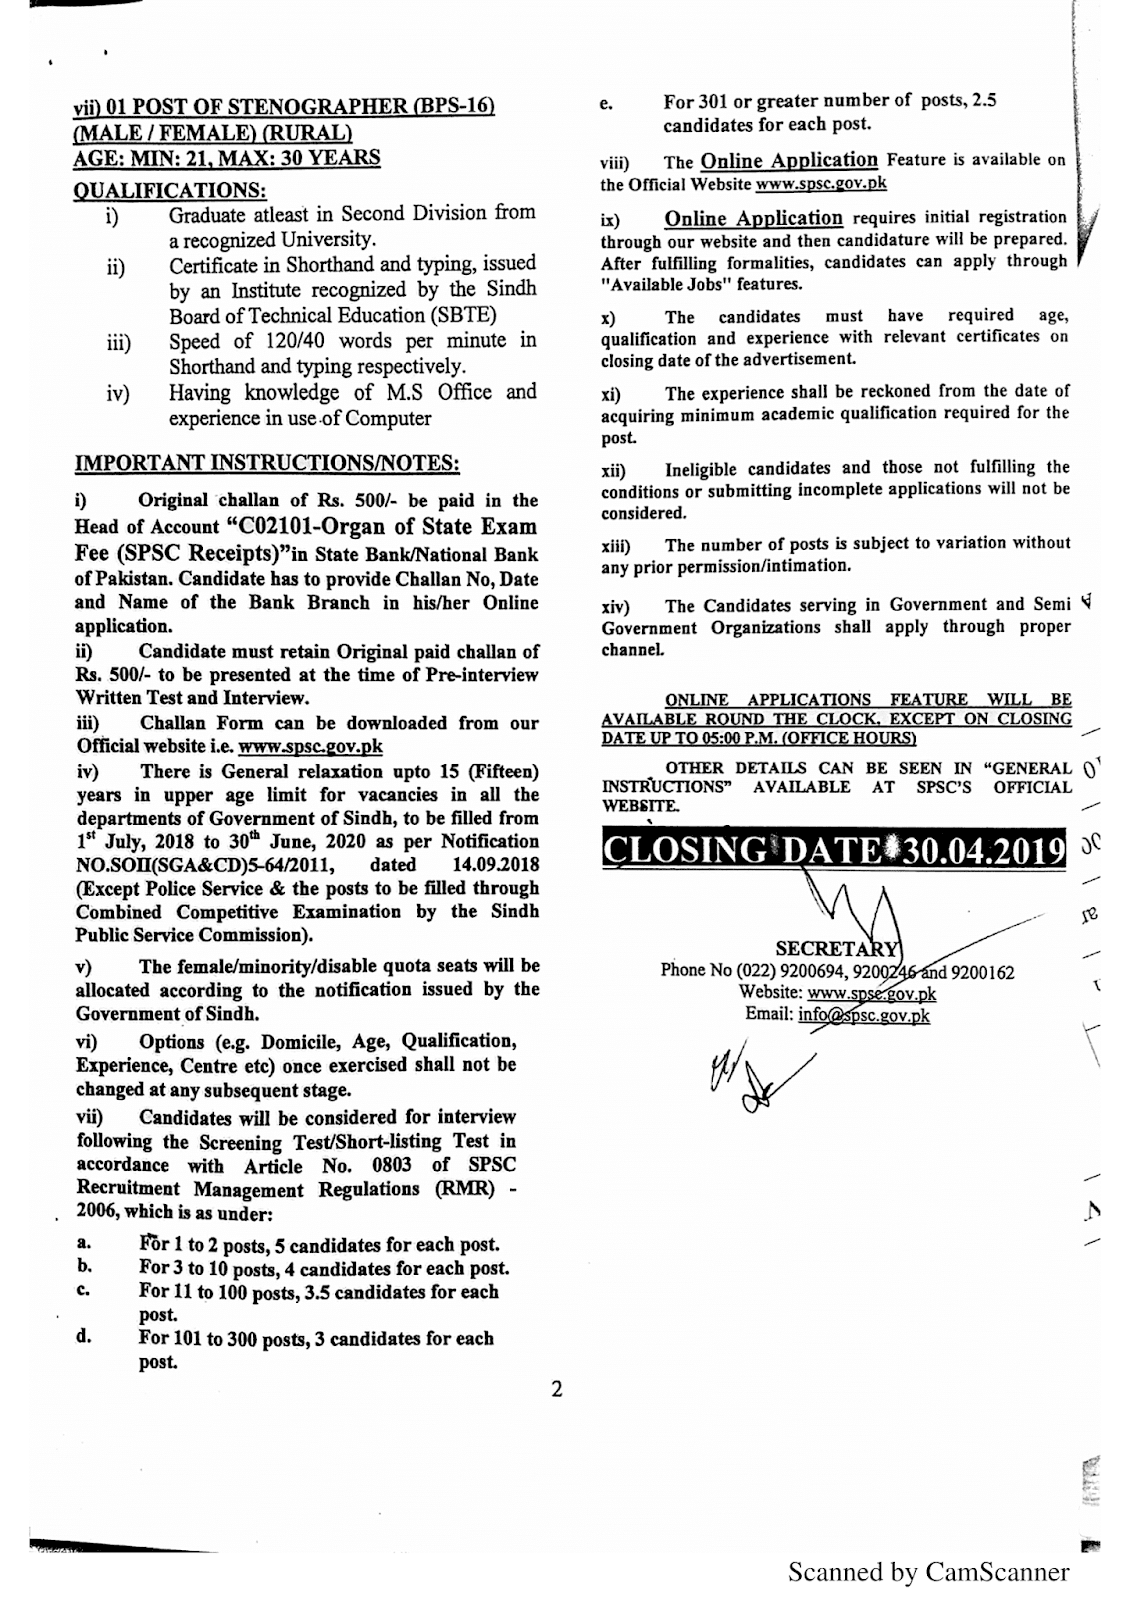 SPSC Advertisement 06/2019 Page No. 2/2